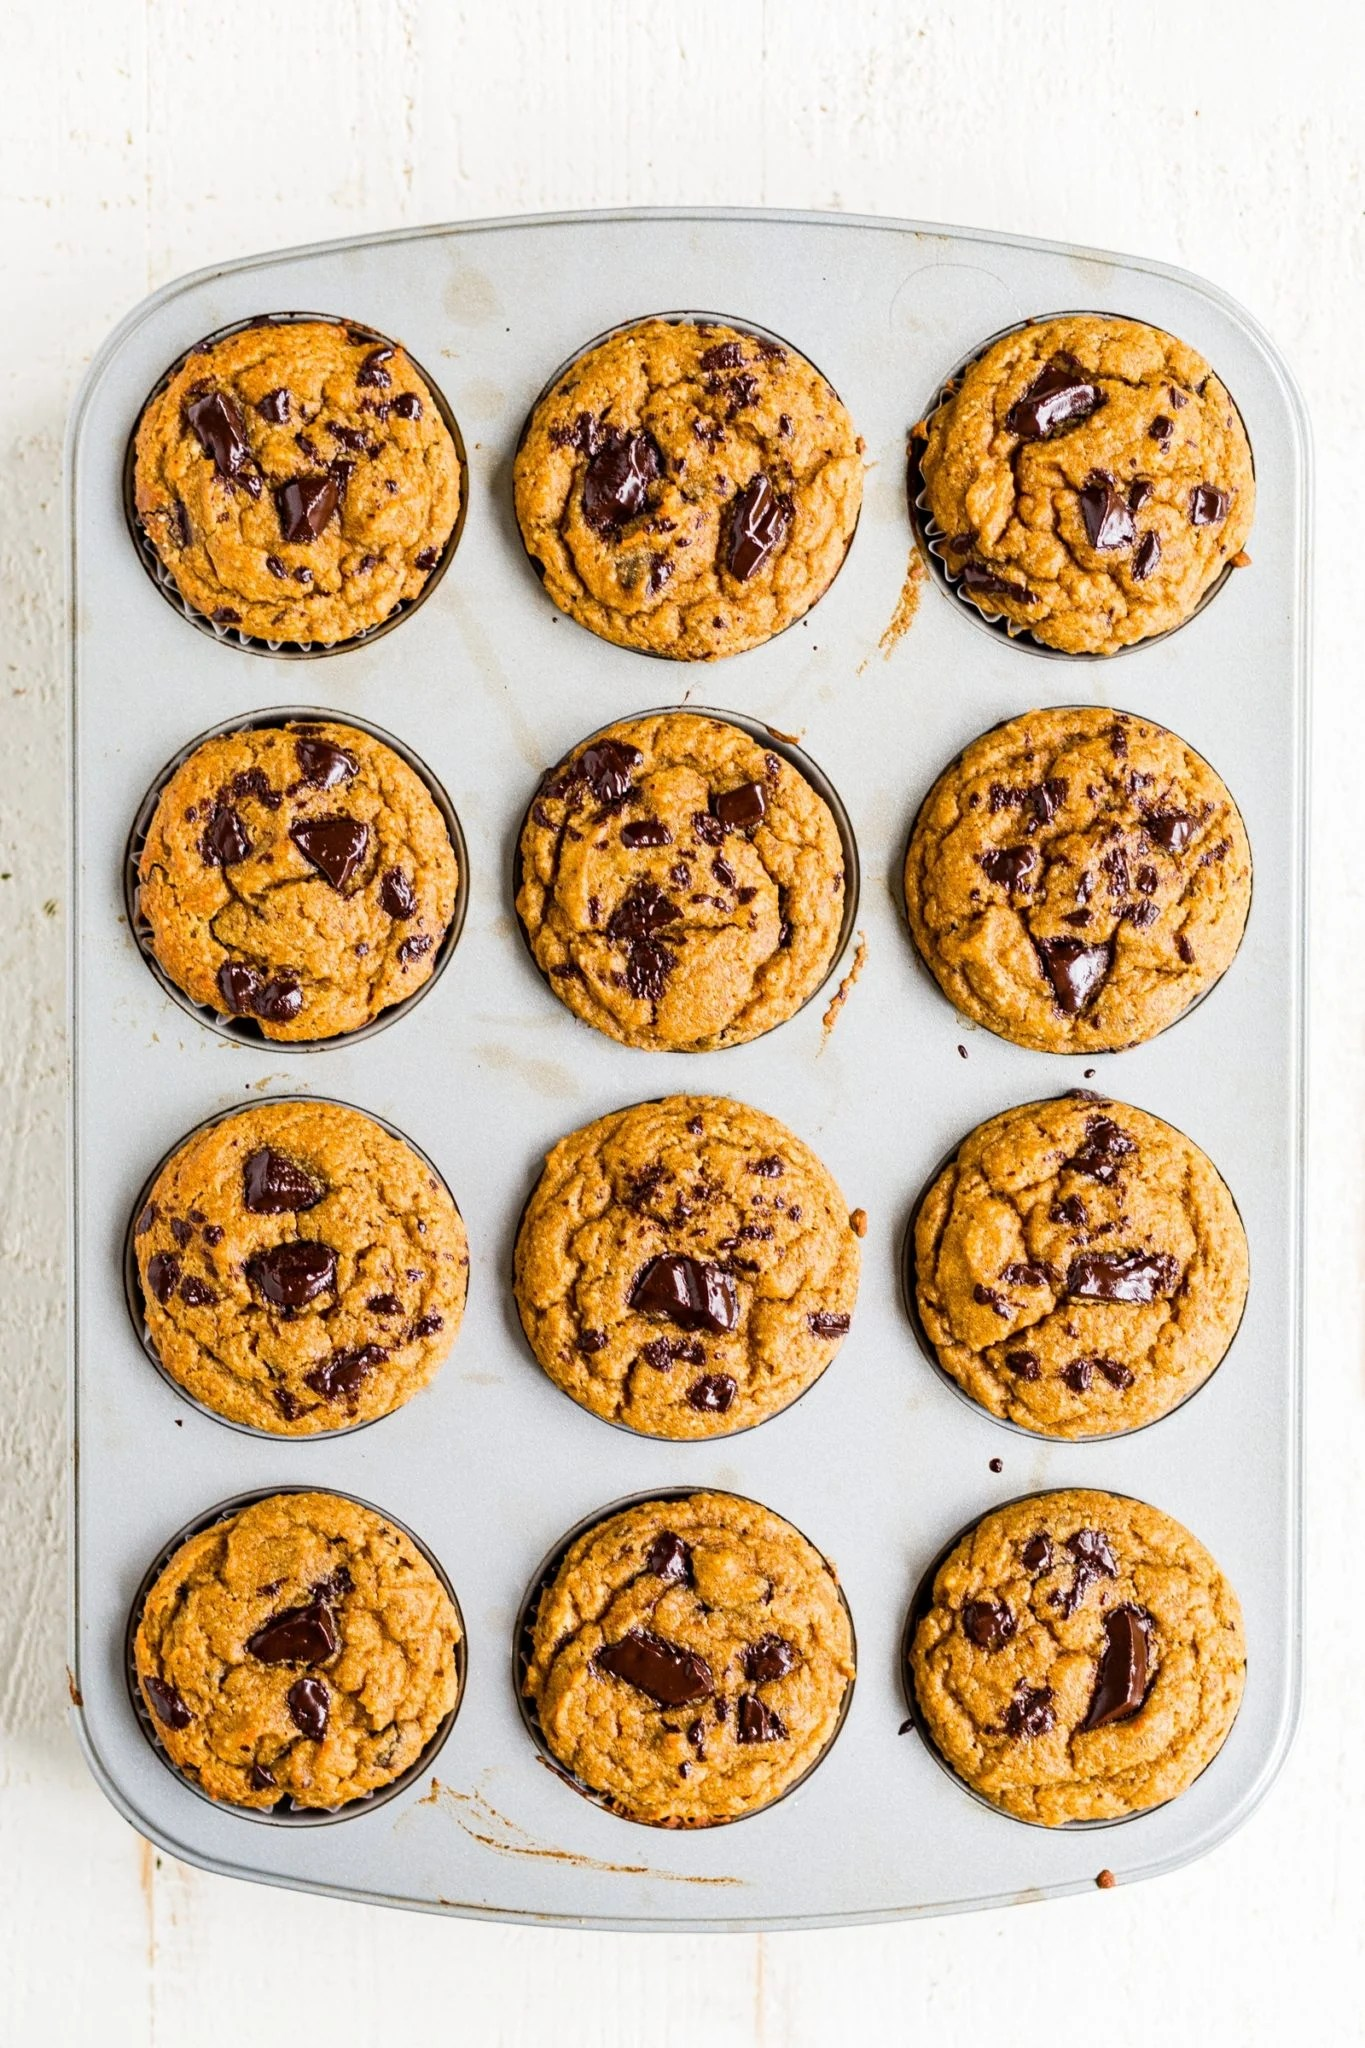 healthy pumpkin chocolate chip muffins in a muffin tin cooling on the table